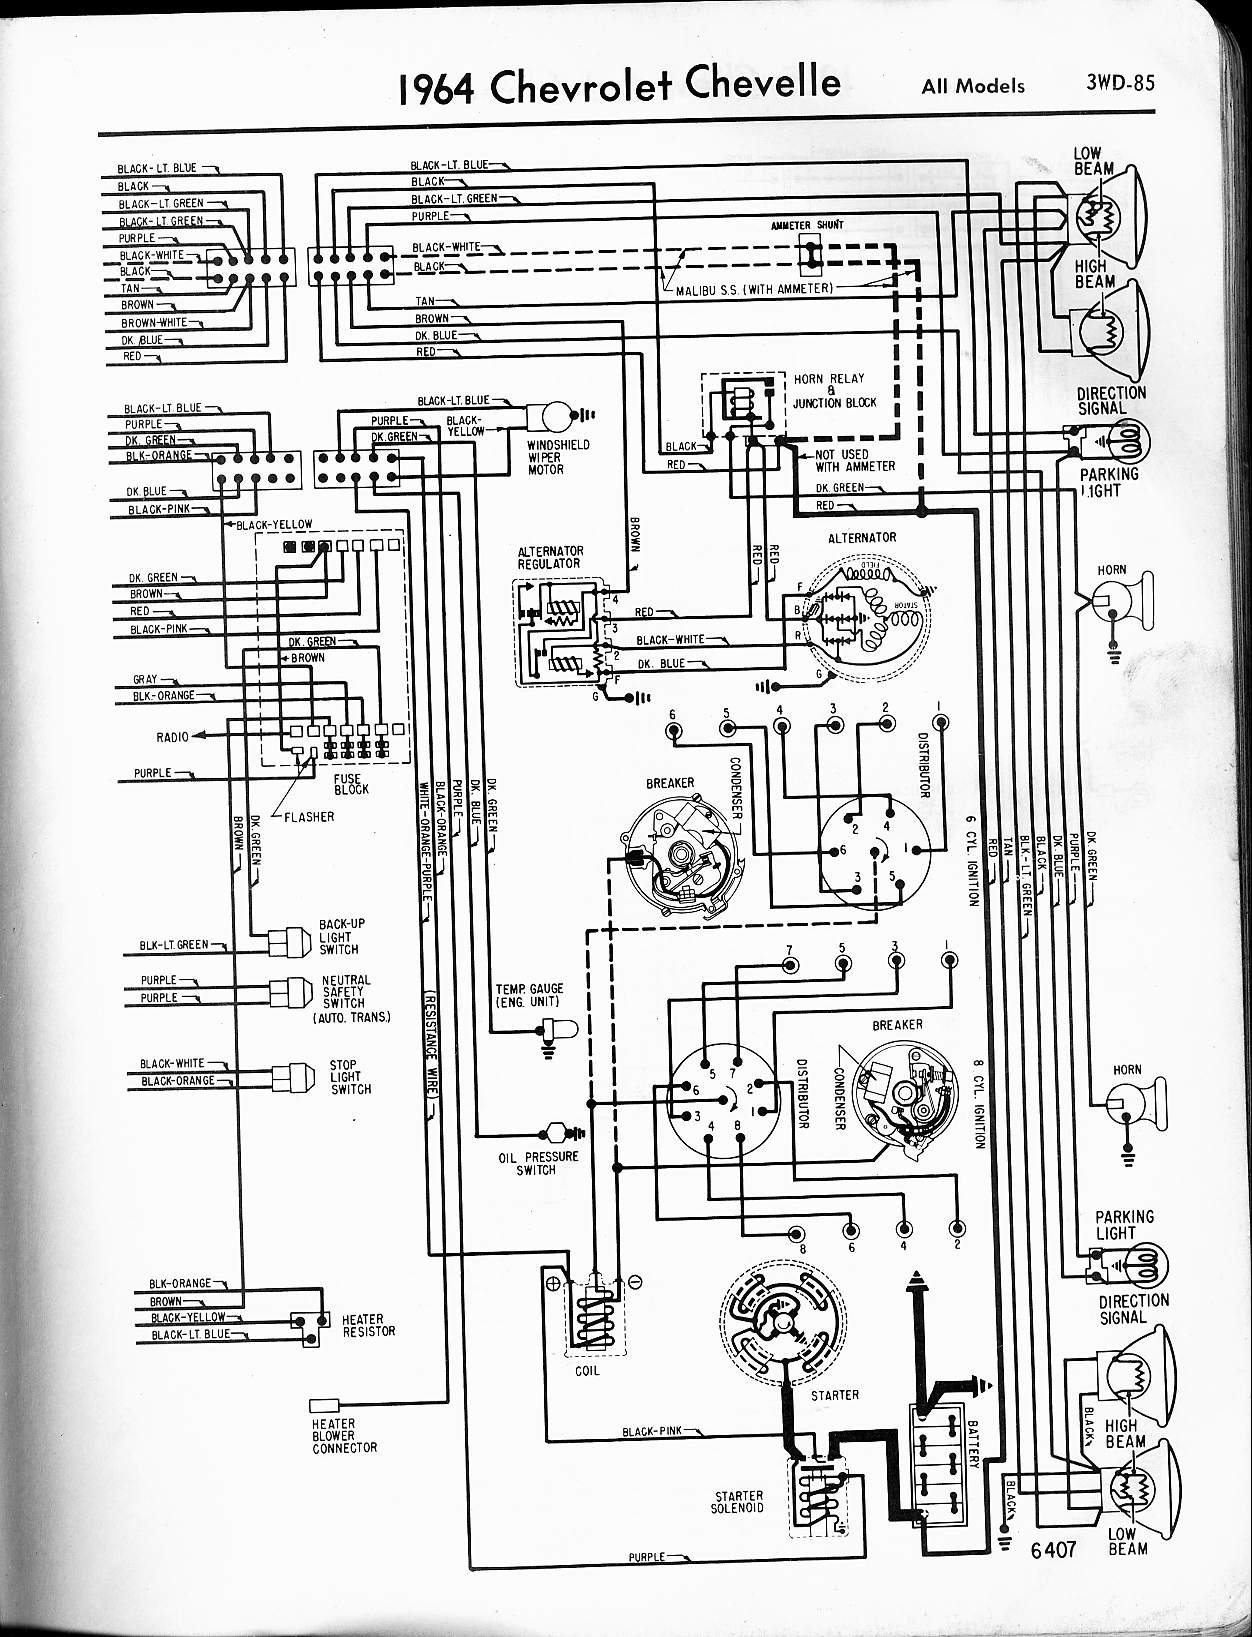 1967 Chevelle Blinker Tach Wiring Diagram Opinions About Chevy Diagrams Rh Wizard Com Harness Schematic Online